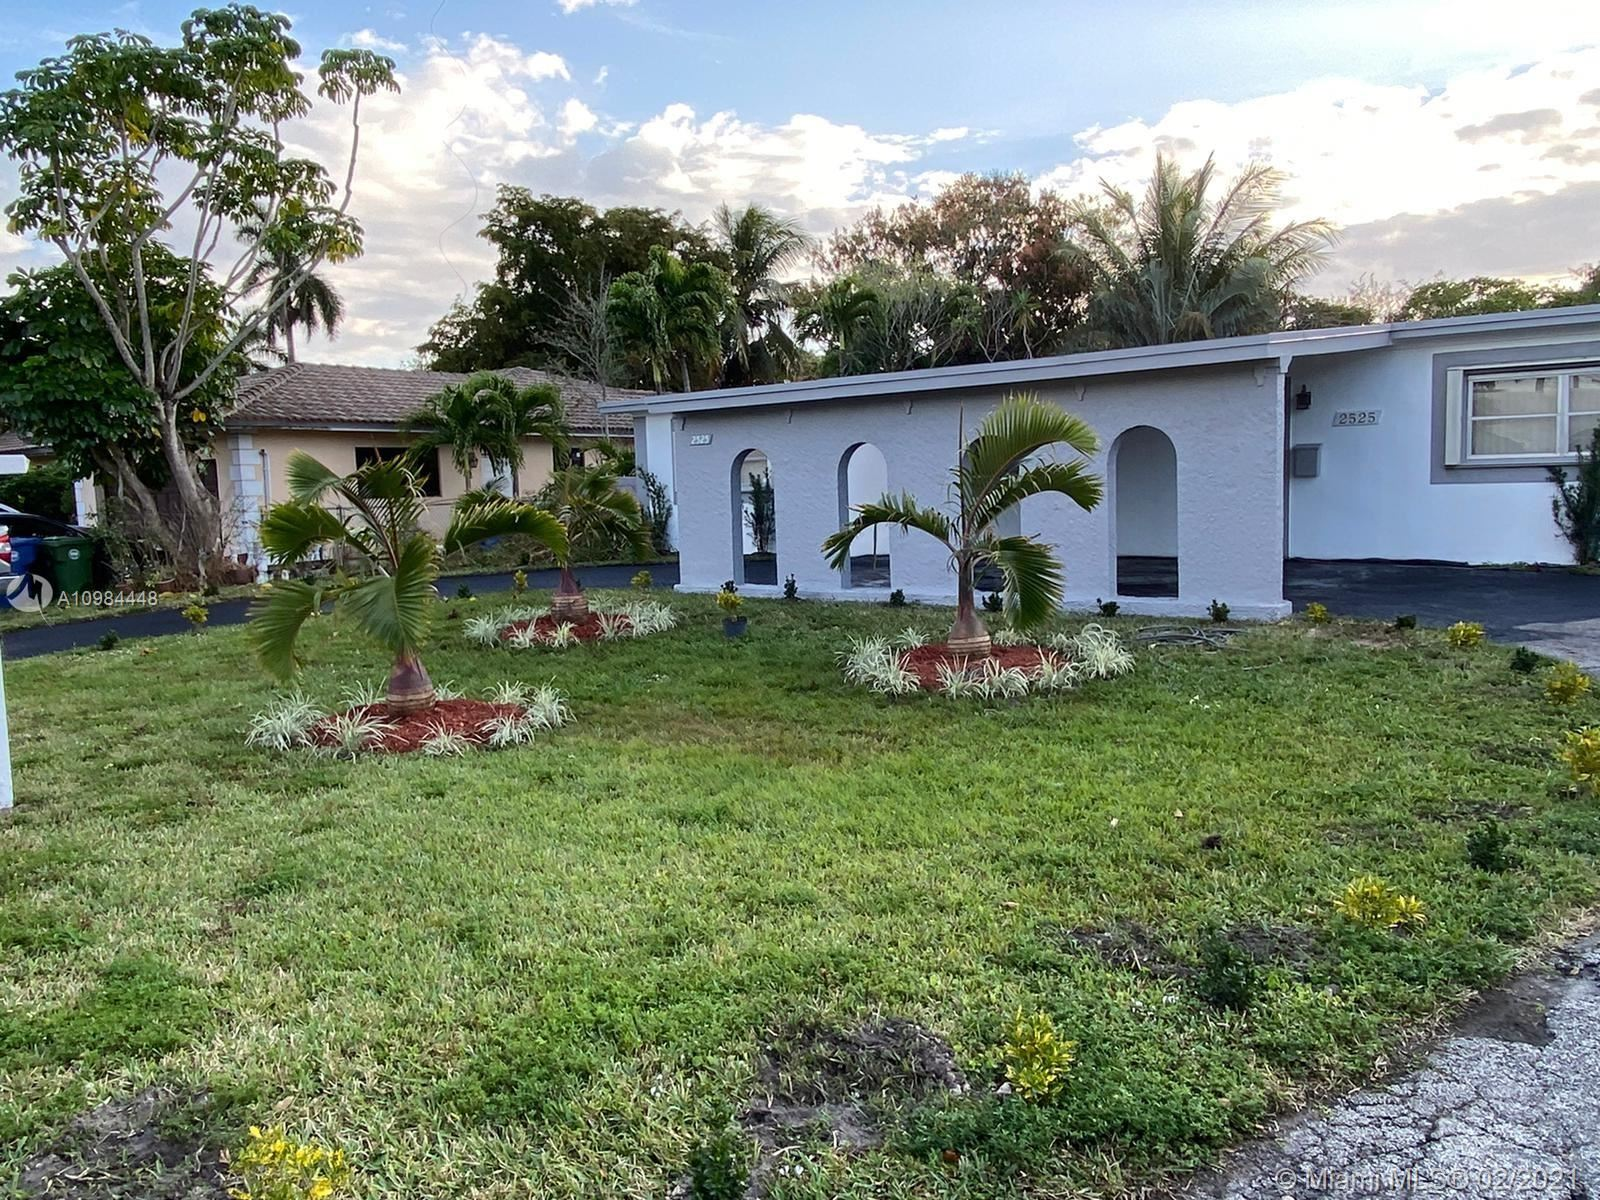 2525 NW 9th Ter, Wilton Manors, FL 33311 - #: A10984448